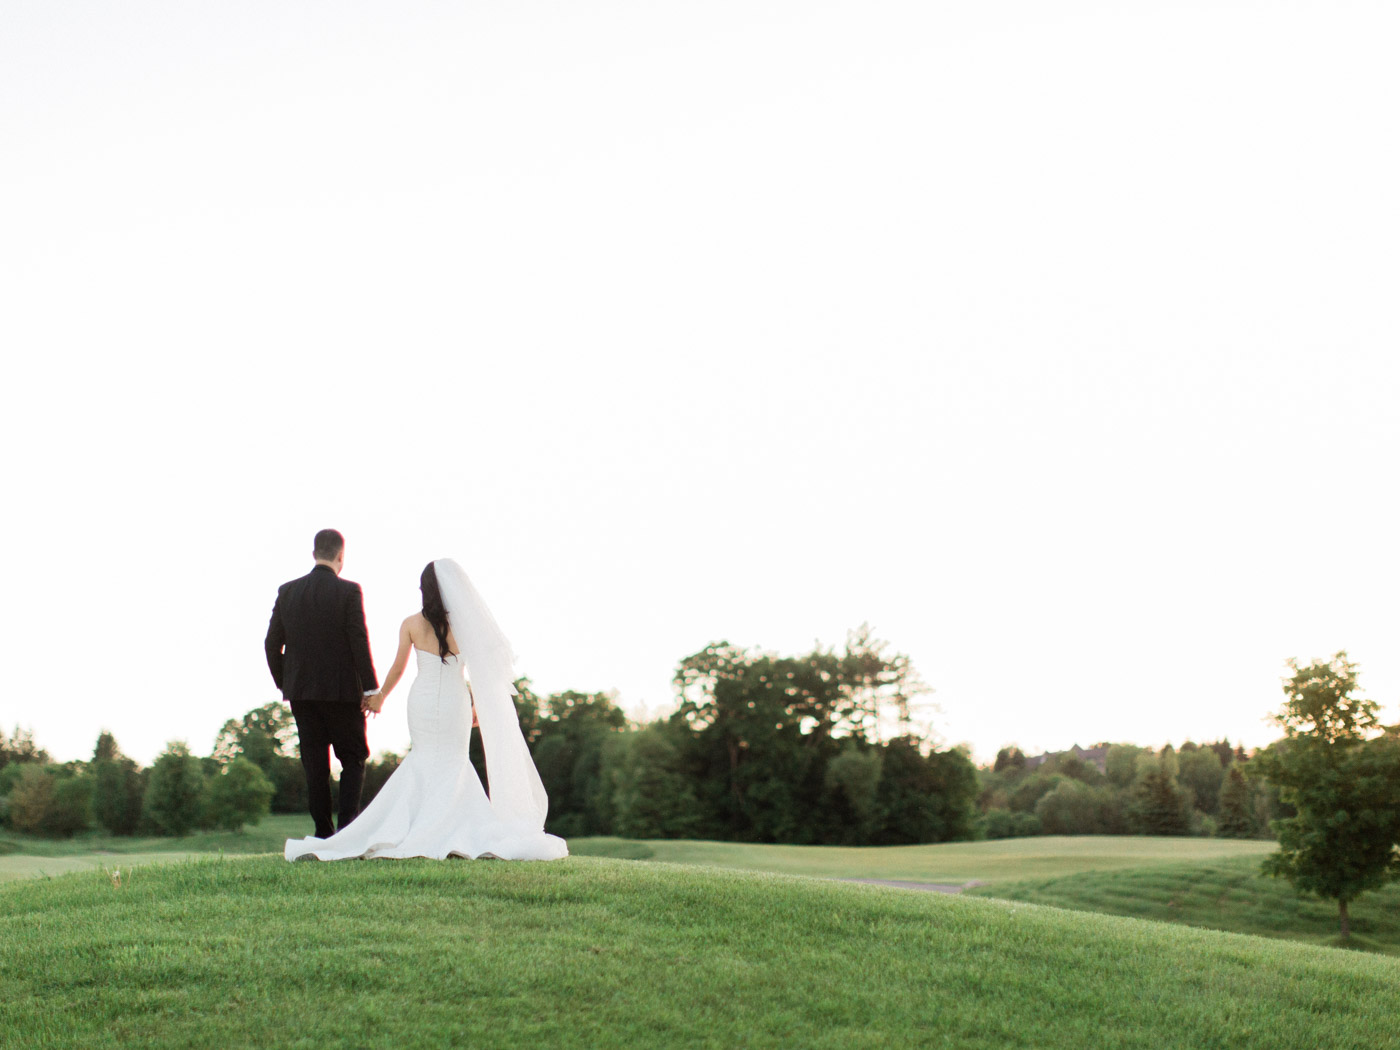 toronto-wedding-photographer-fine-art-documentary-elegant-toronto-golf-club-kings-riding-215.jpg